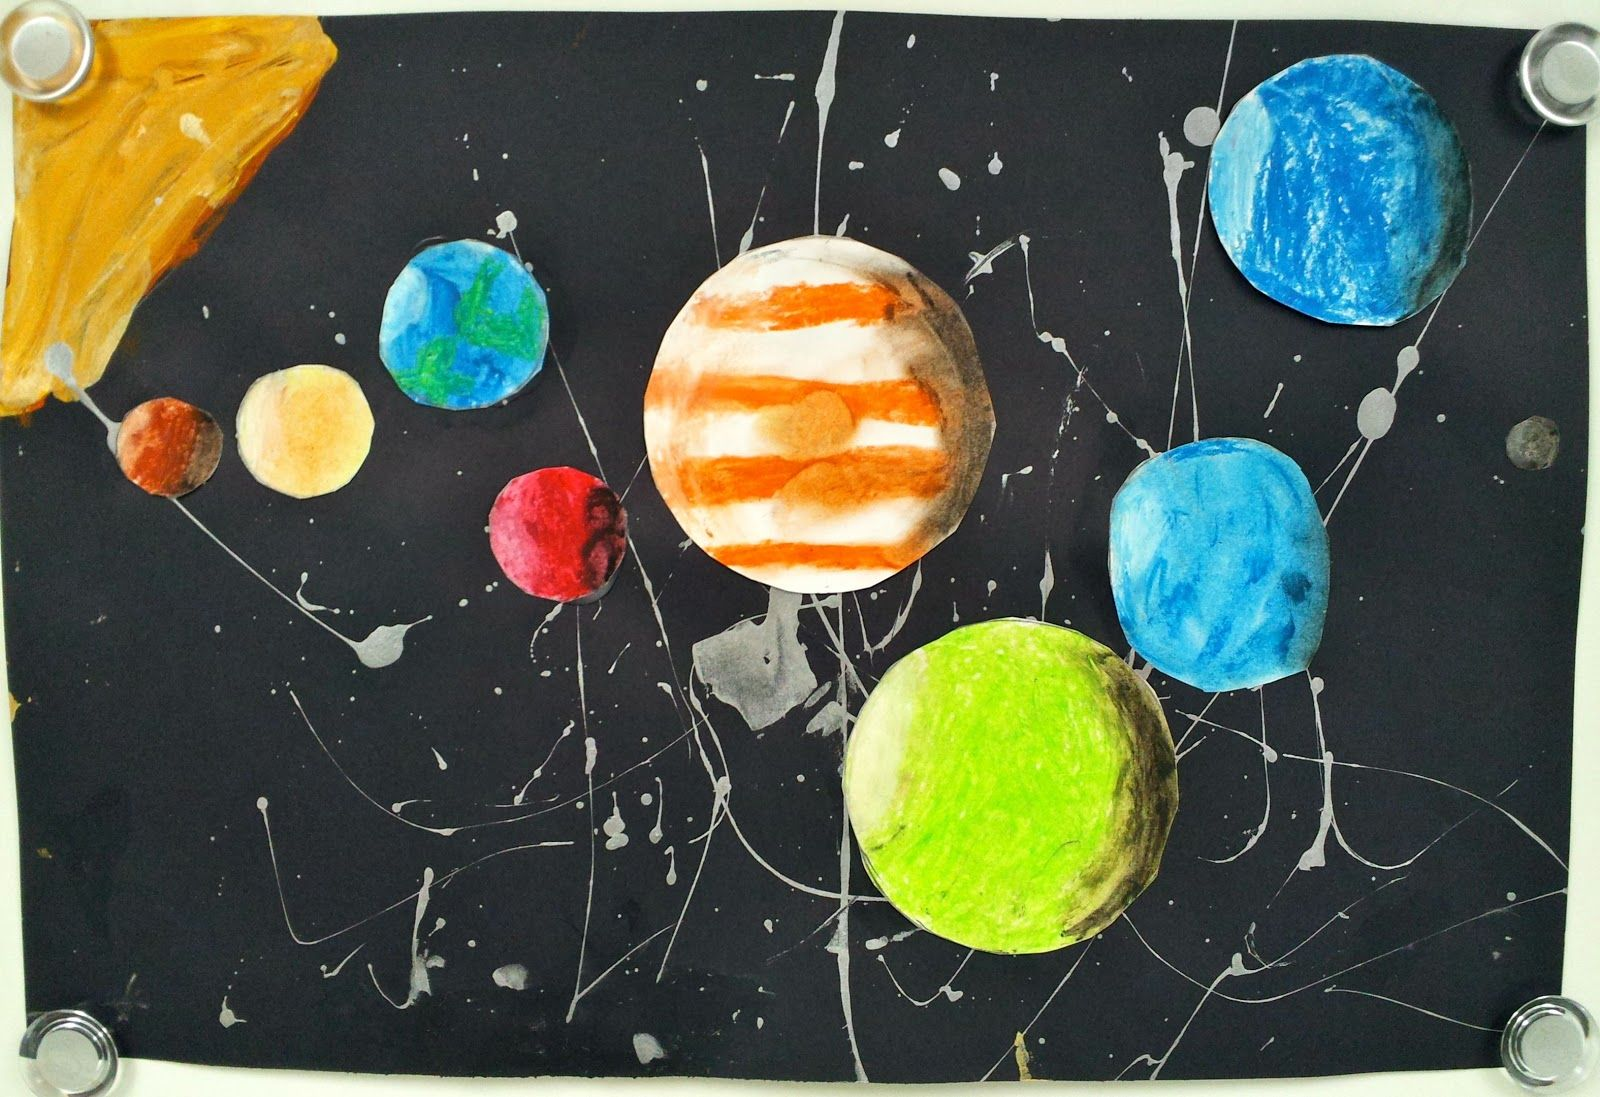 solar system project ideas for 5th grade - photo #46